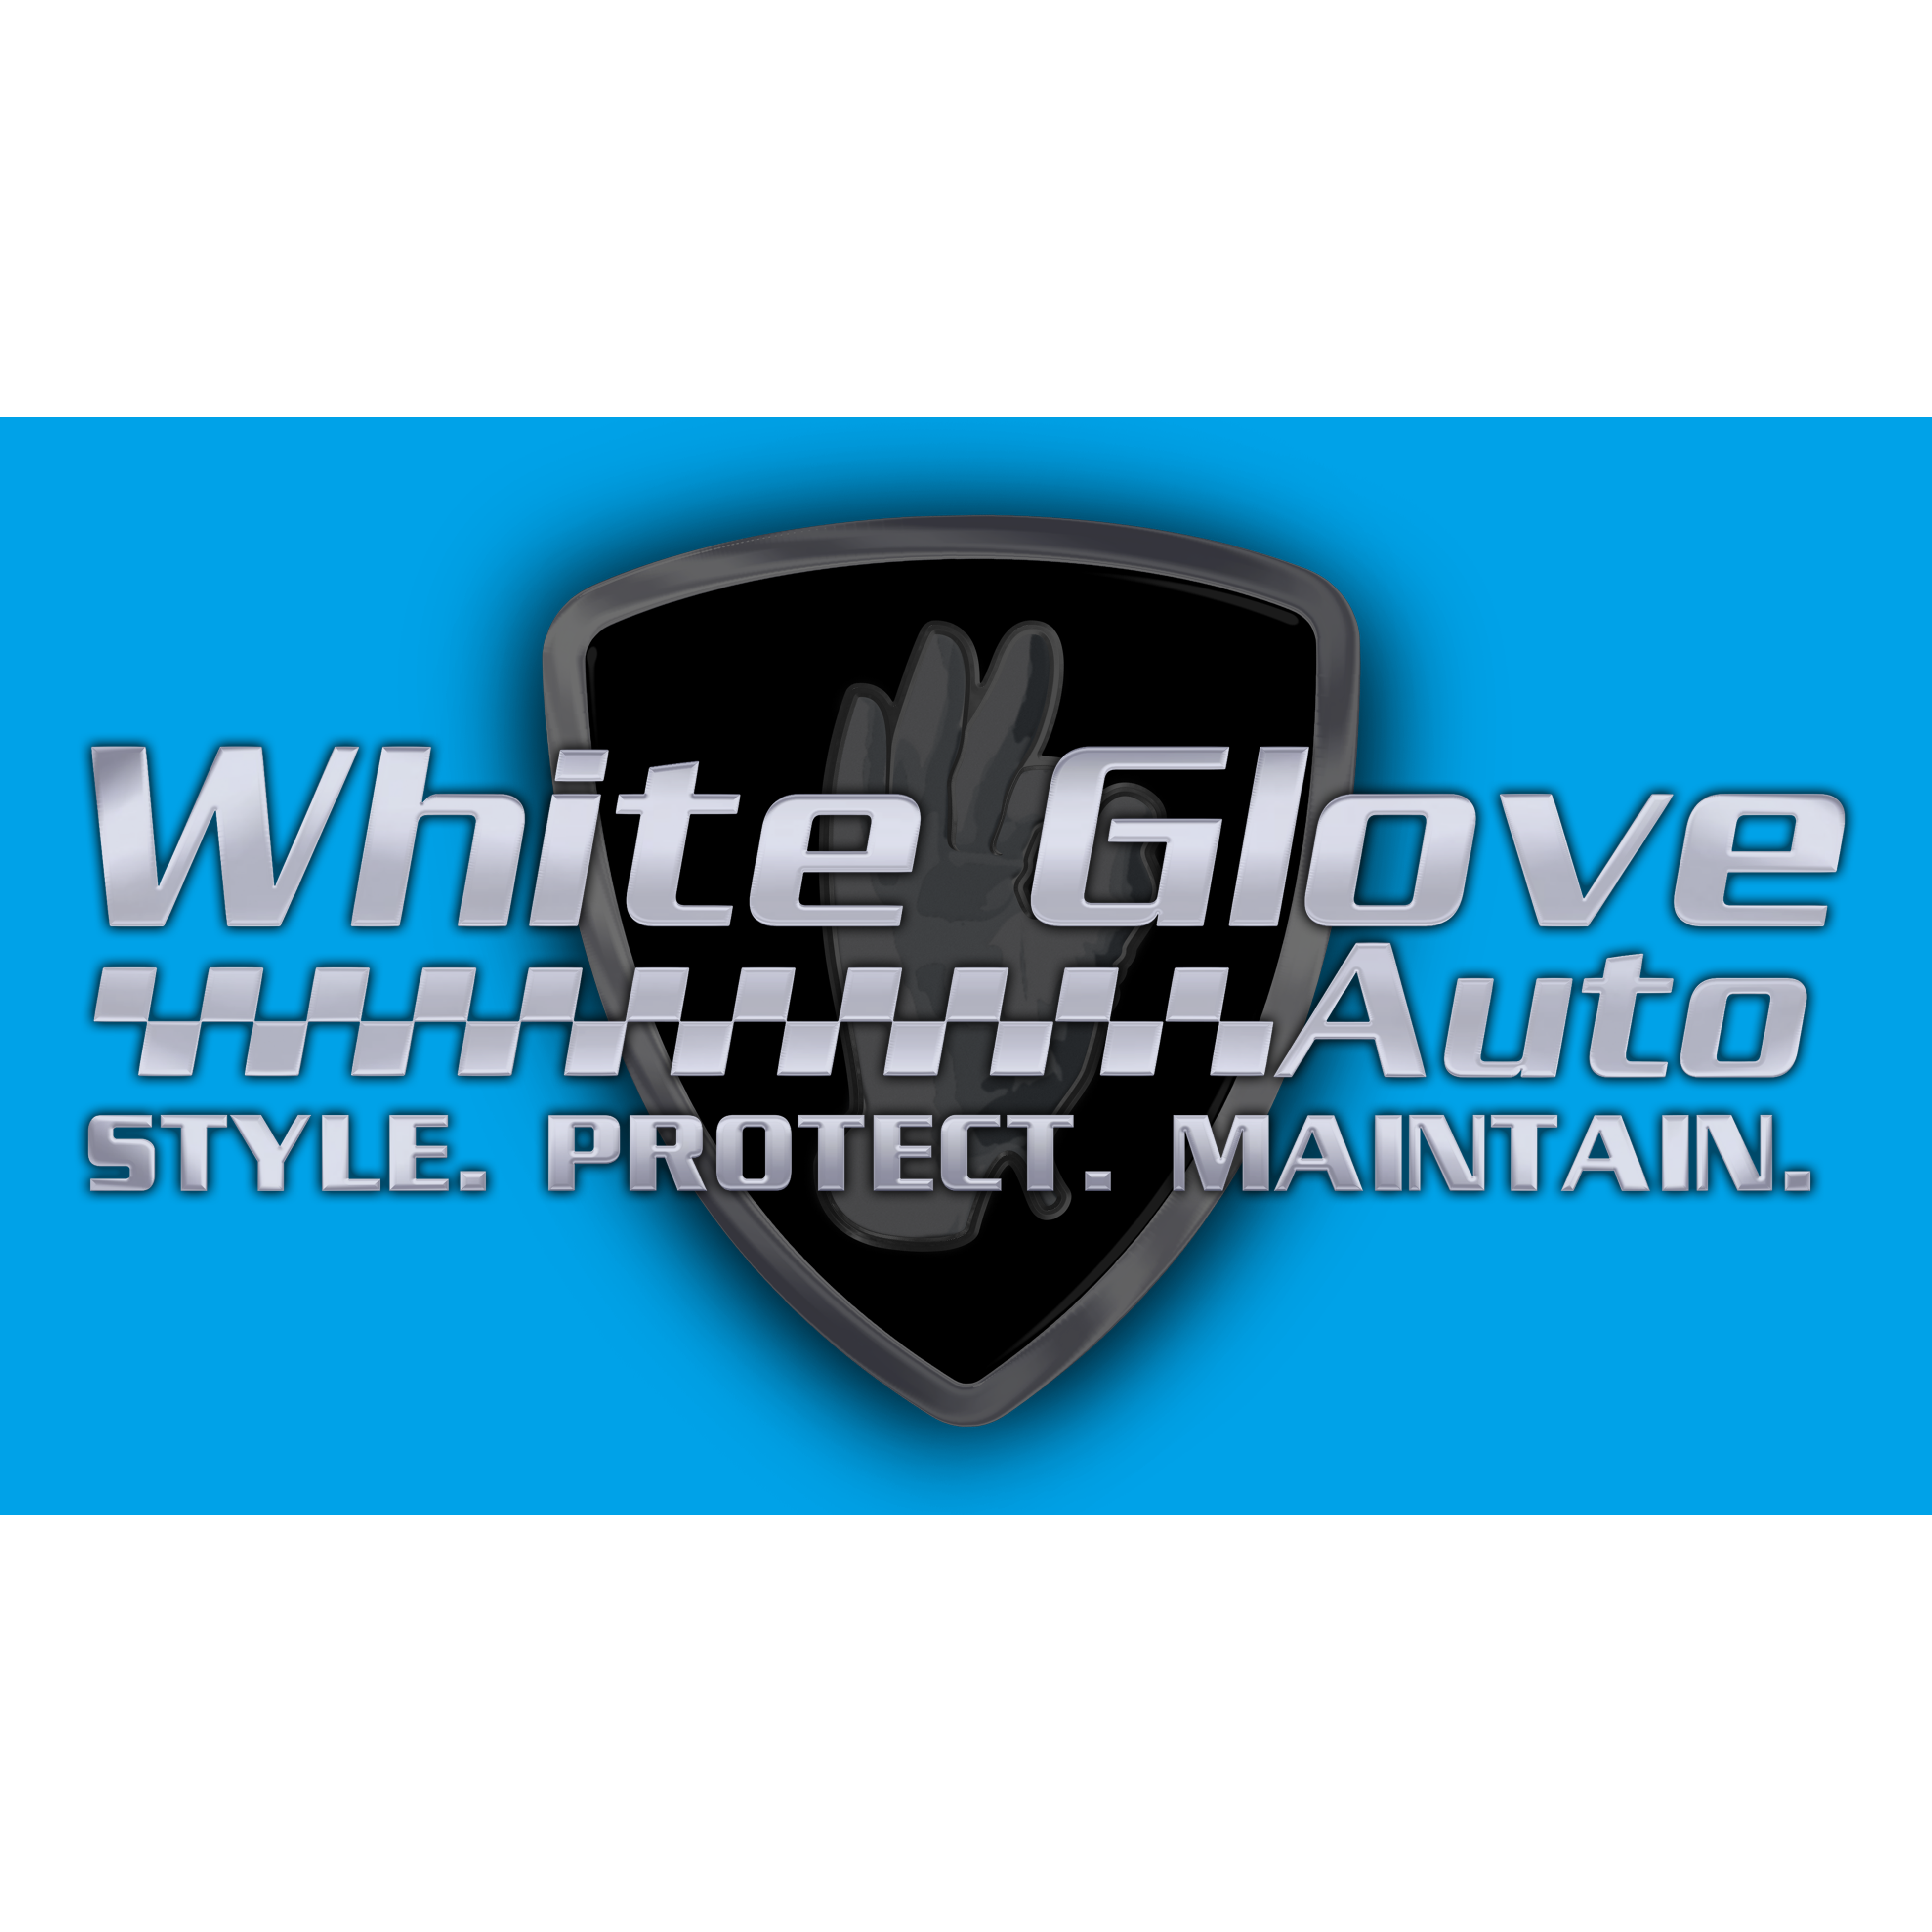 White glove auto coupons near me in bixby 8coupons for Paint chip repair near me